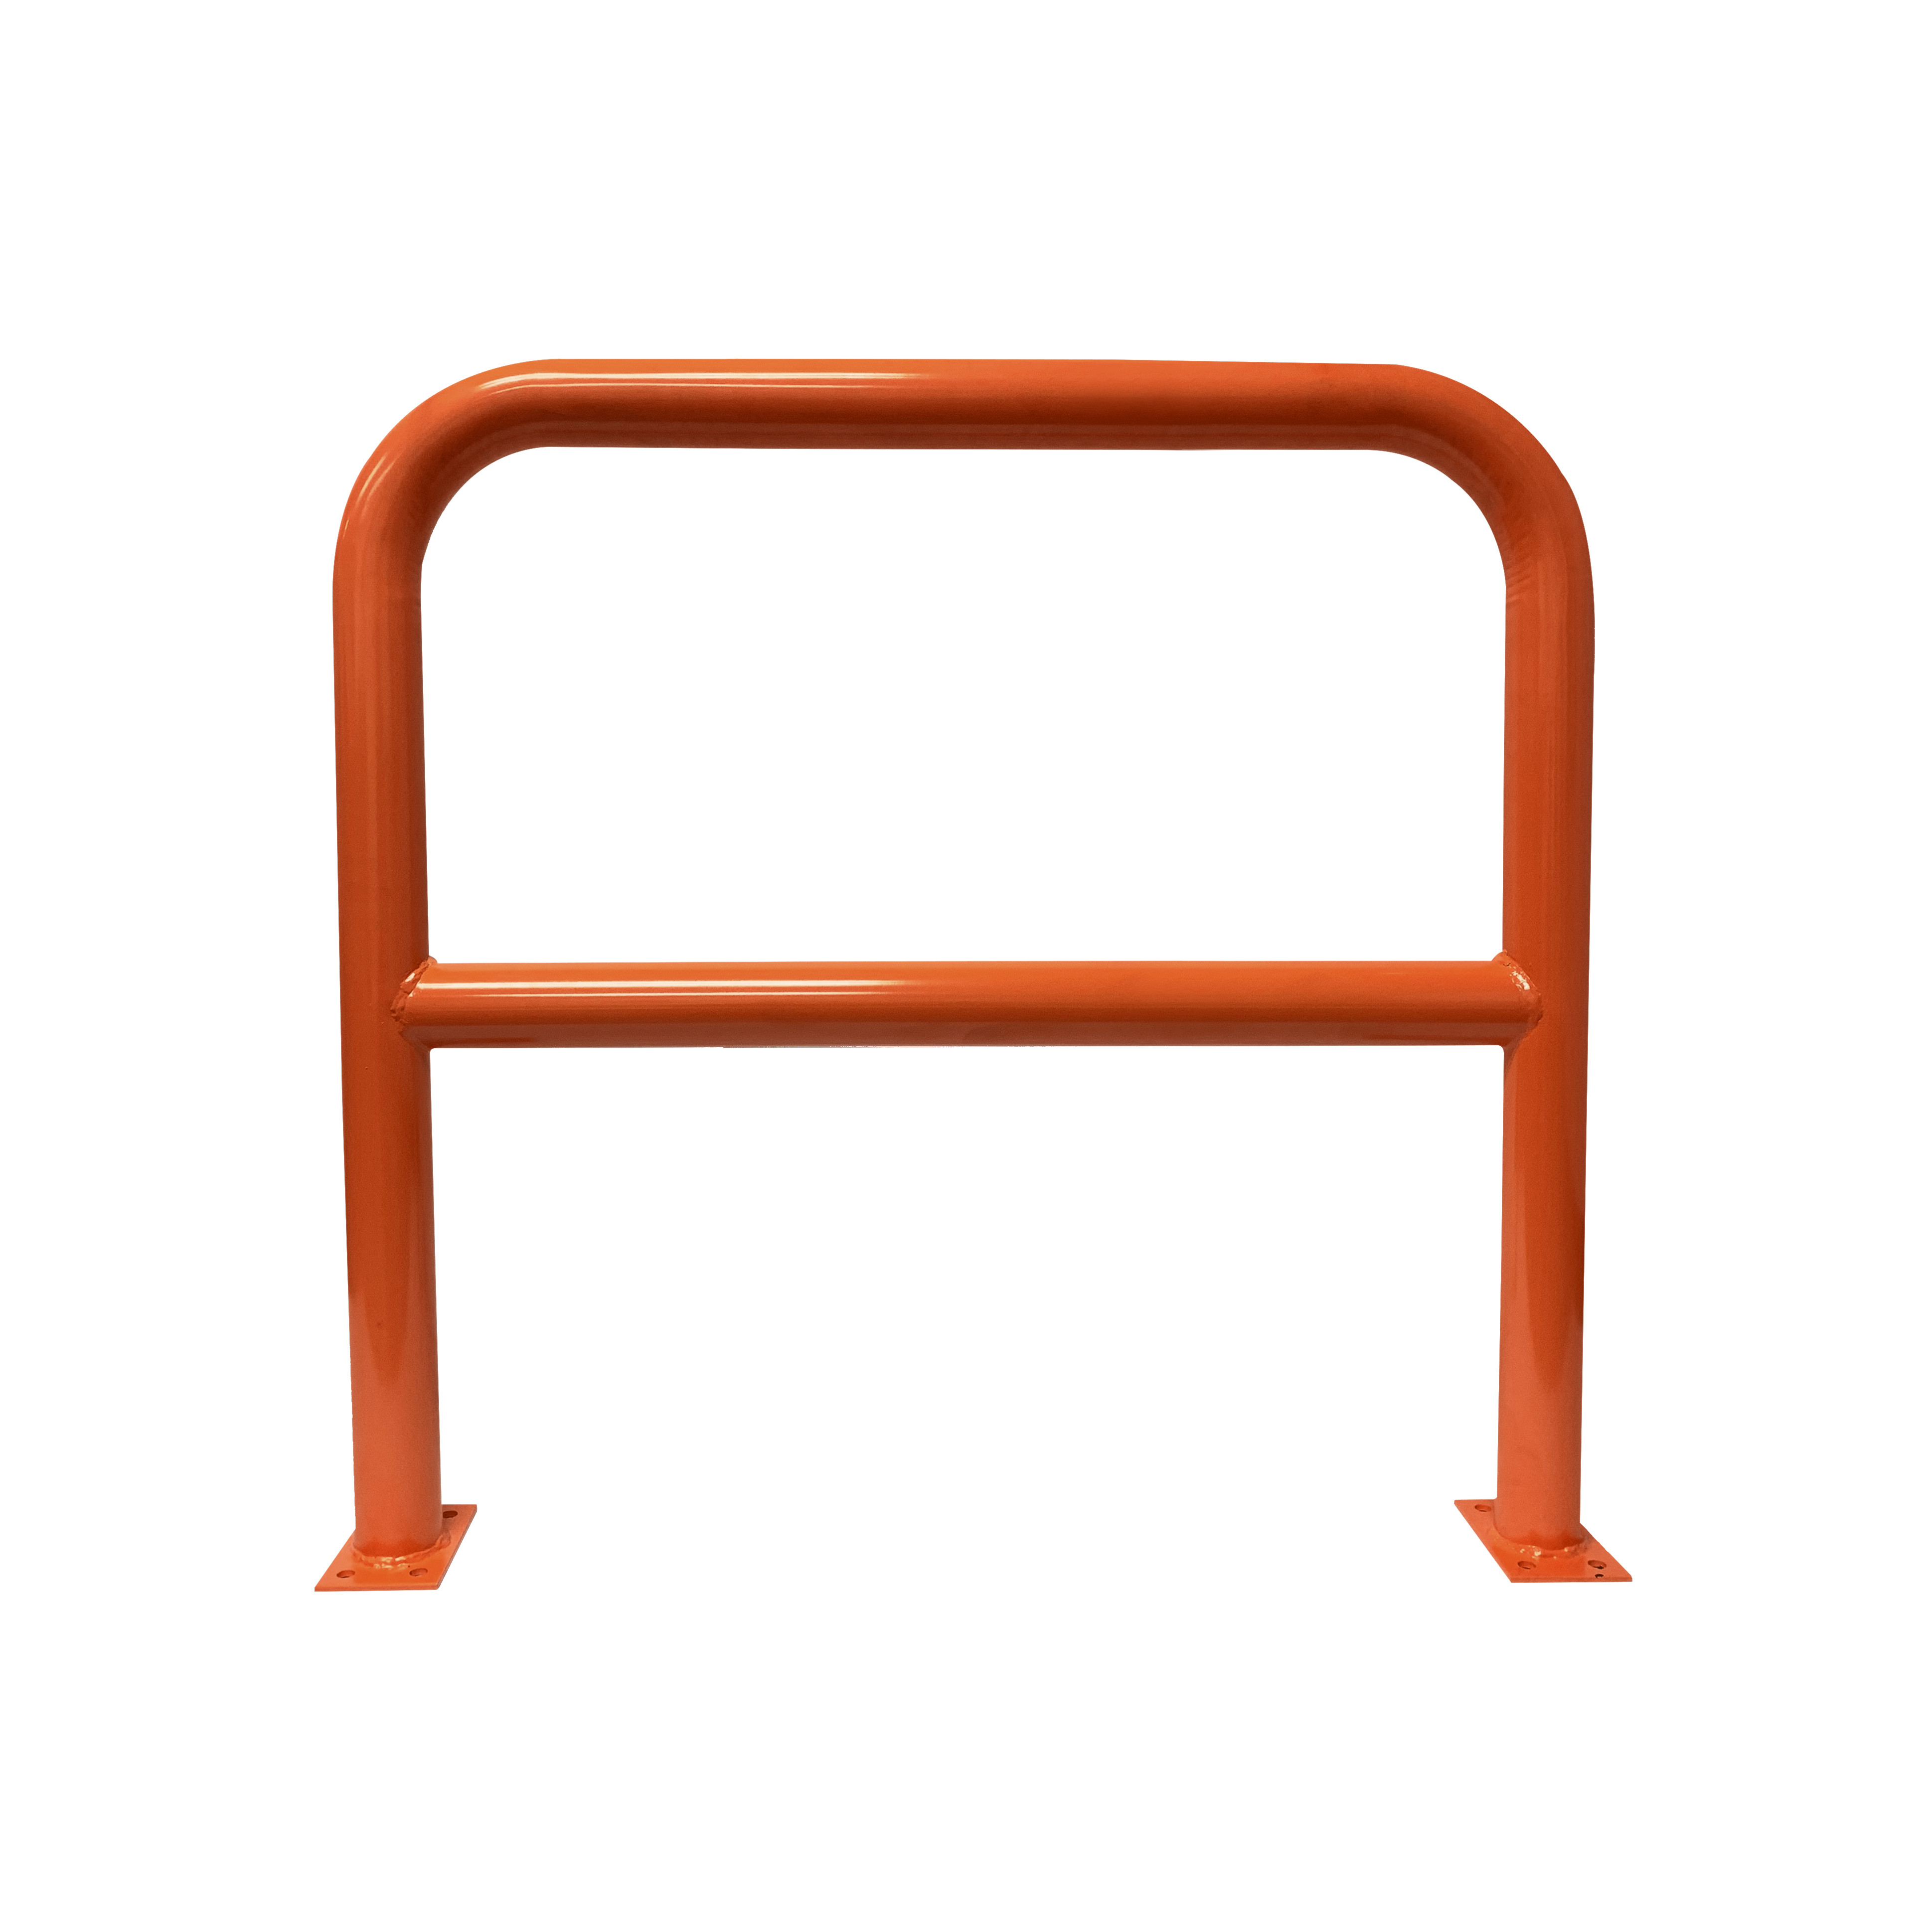 Barrier Protector - 1000mm High x 1200mm Wide - 76mm Tube Orange